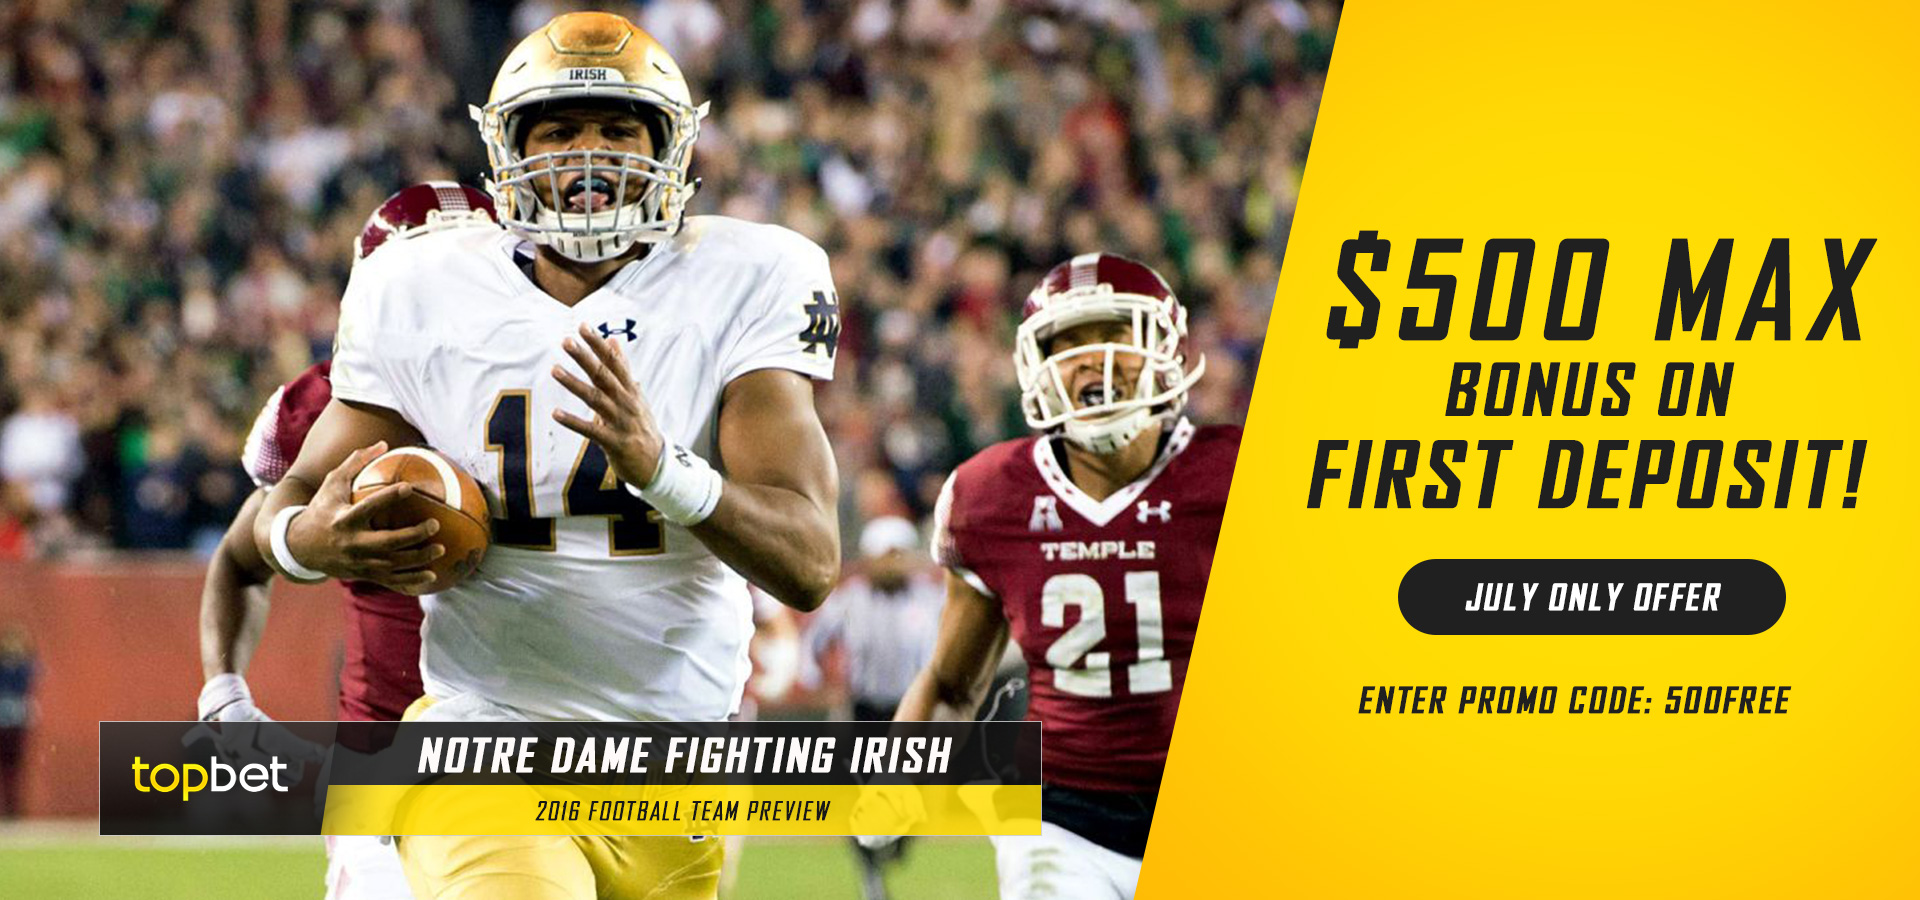 notre dame fighting irish 2016 football team preview